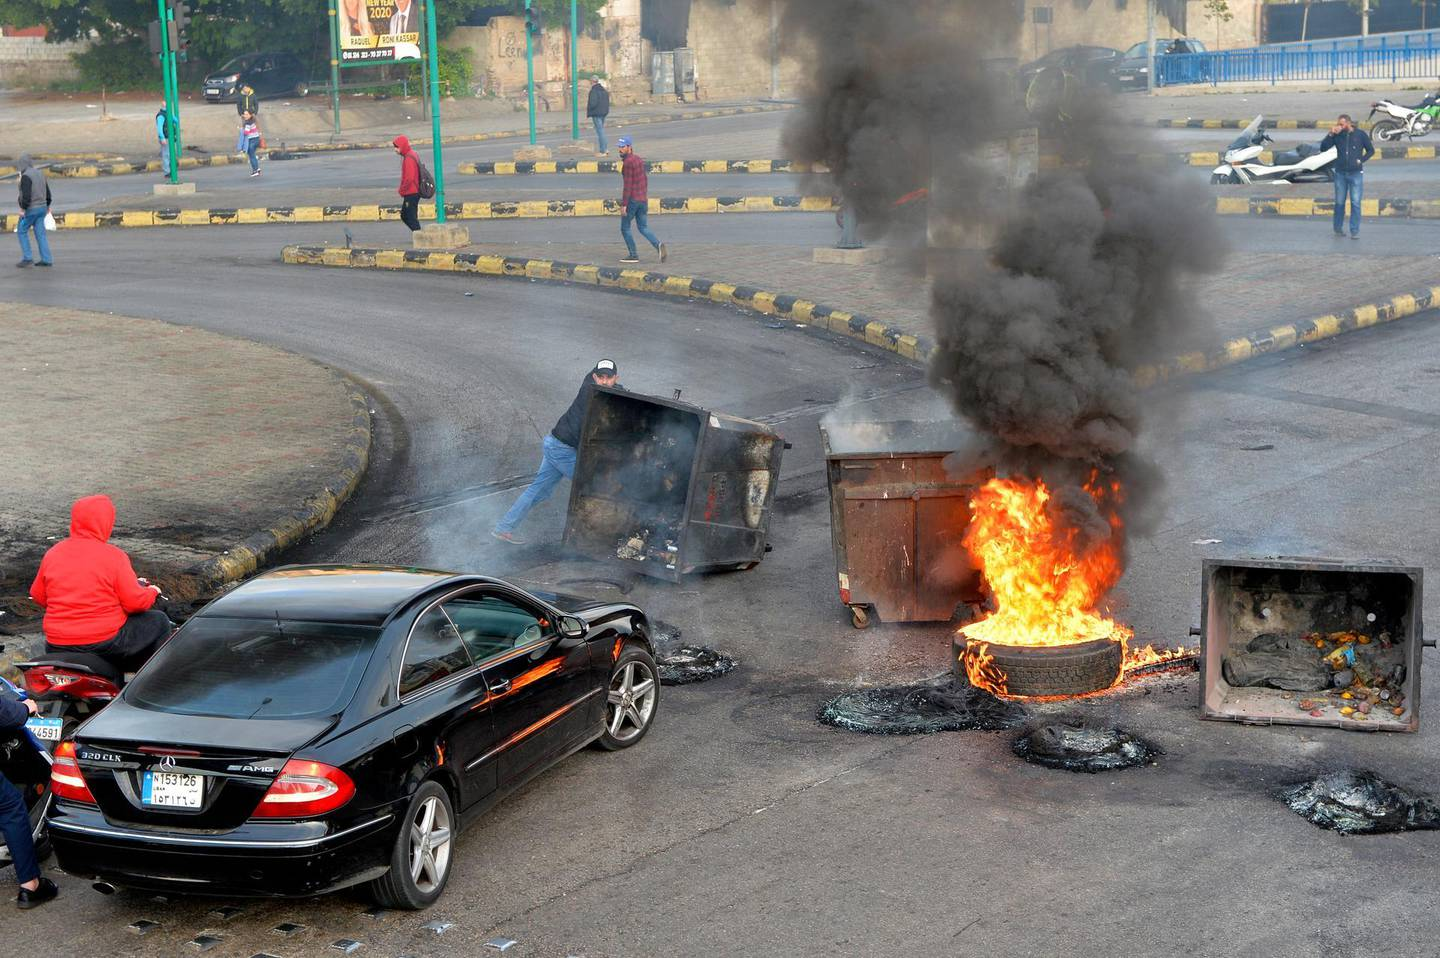 epa08087668 Supporters of outgoing Lebanese Prime Minister Hariri burn dumpsters and tires as they block a main highway in protest against the nomination of Hassan Diab as Prime Minister, in Beirut, Lebanon, 23 December 2019. The newly appointed Lebanese prime minister vowed on 19 December to form a government of experts within six weeks.  EPA/WAEL HAMZEH